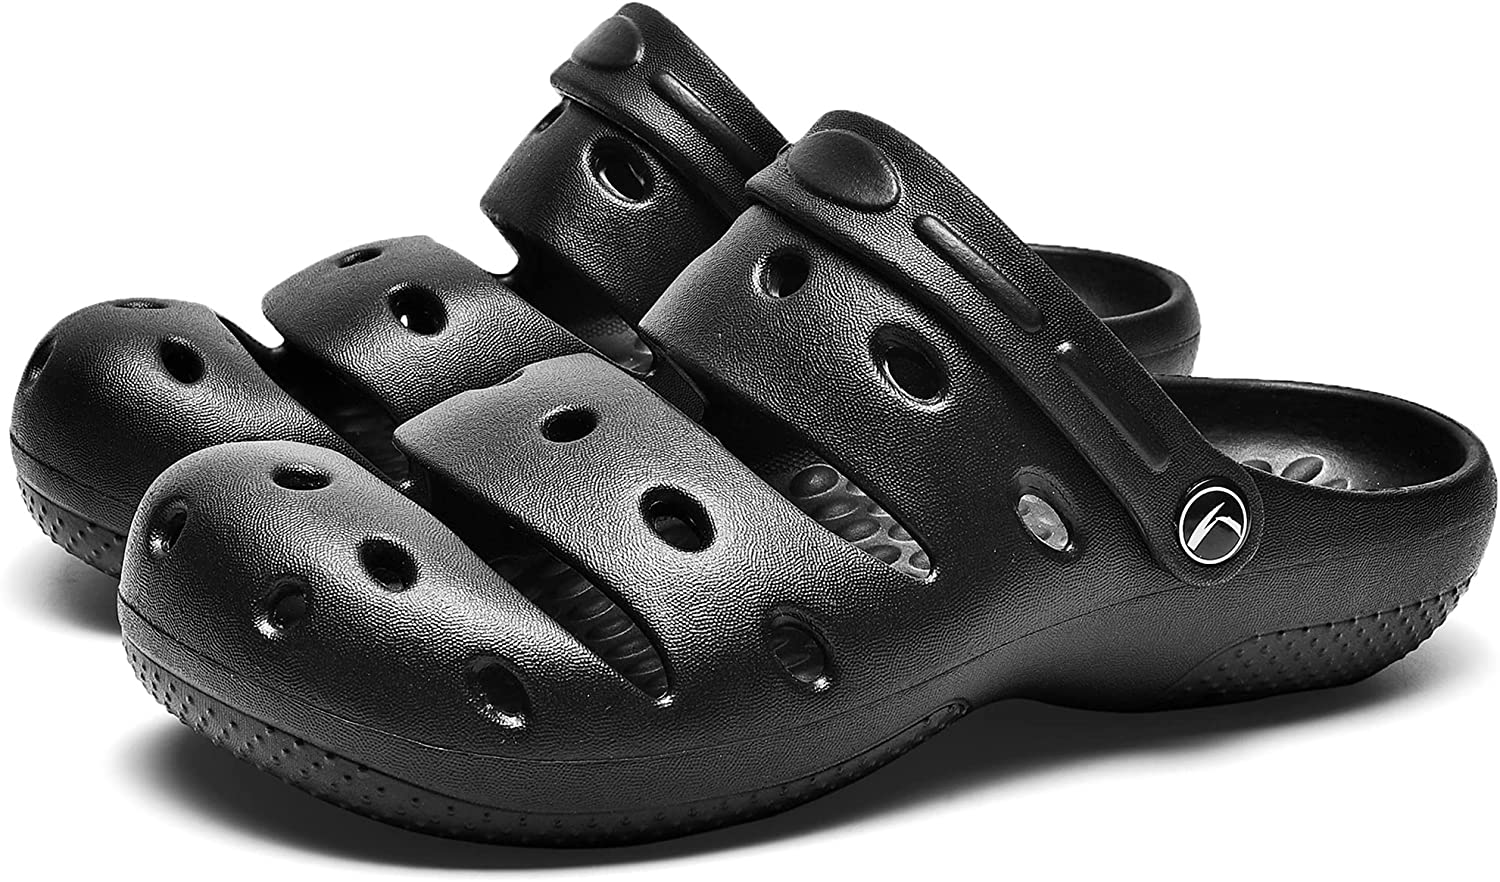 Axcone Mens Garden Clogs Shoes Sandals Slippers